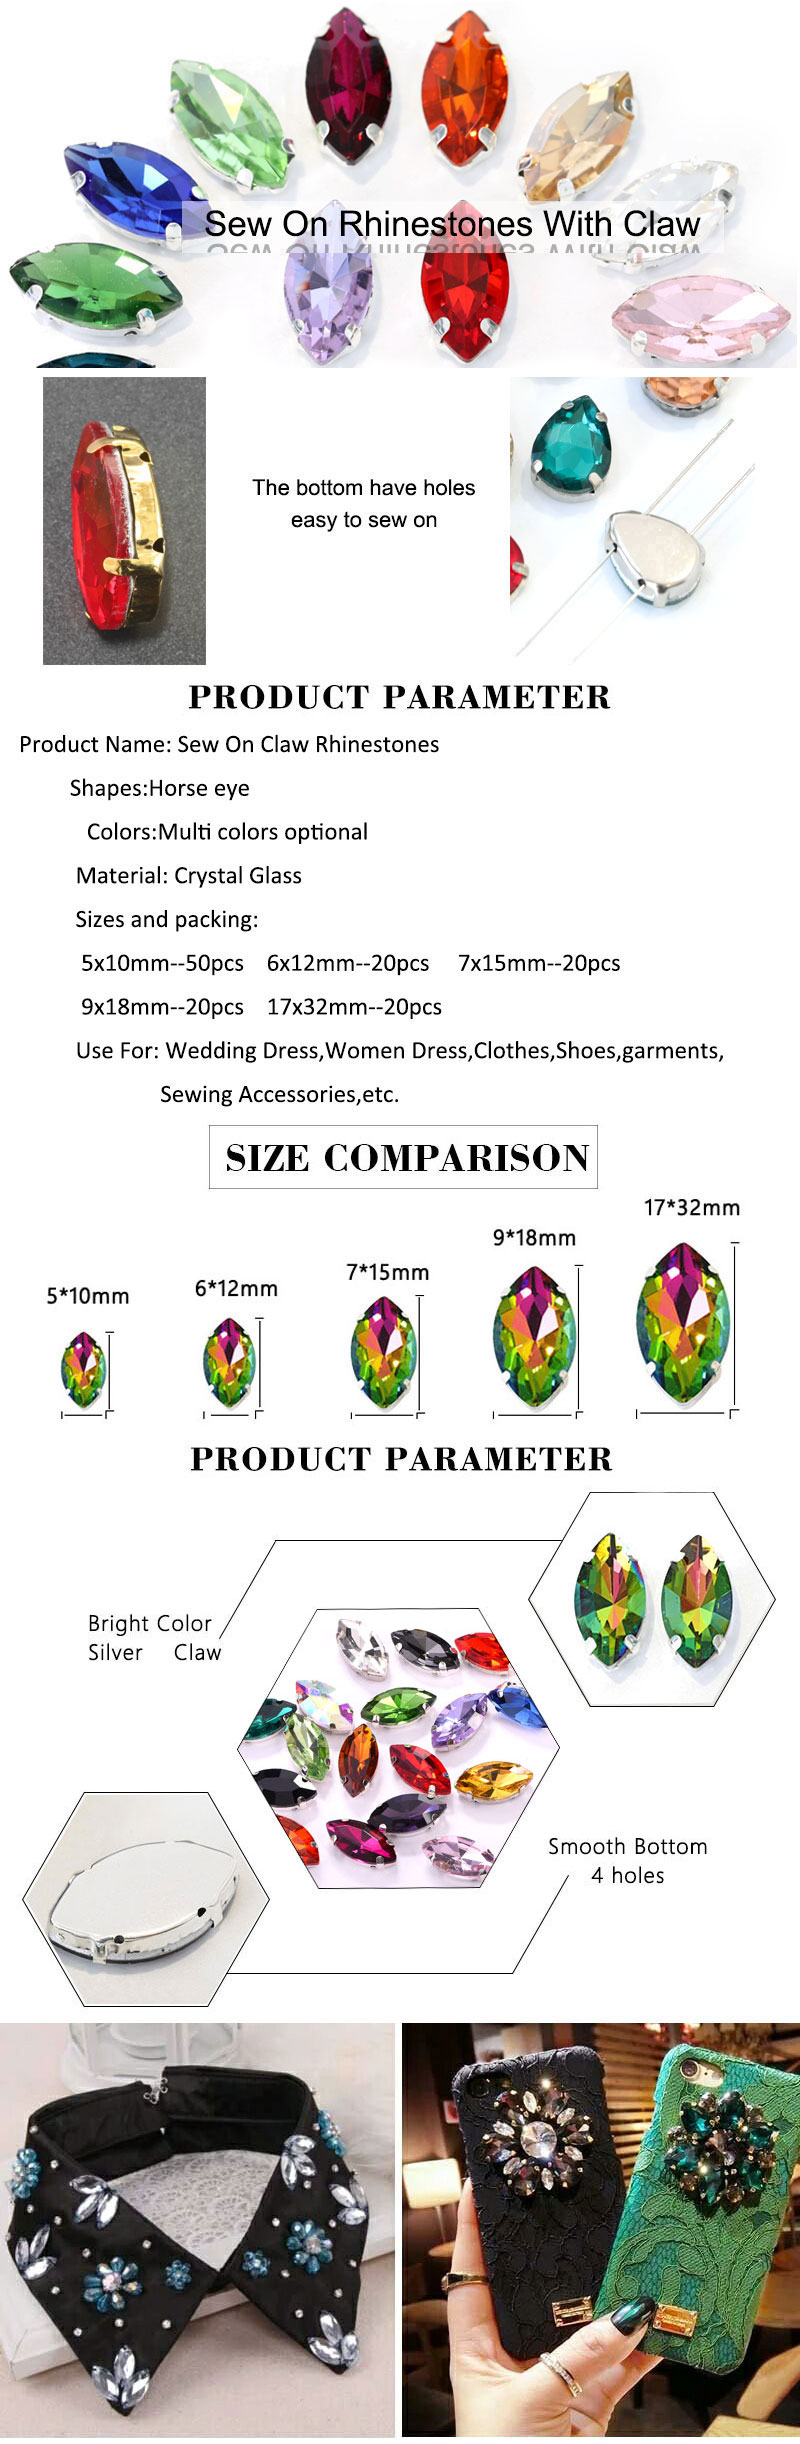 product-informtion